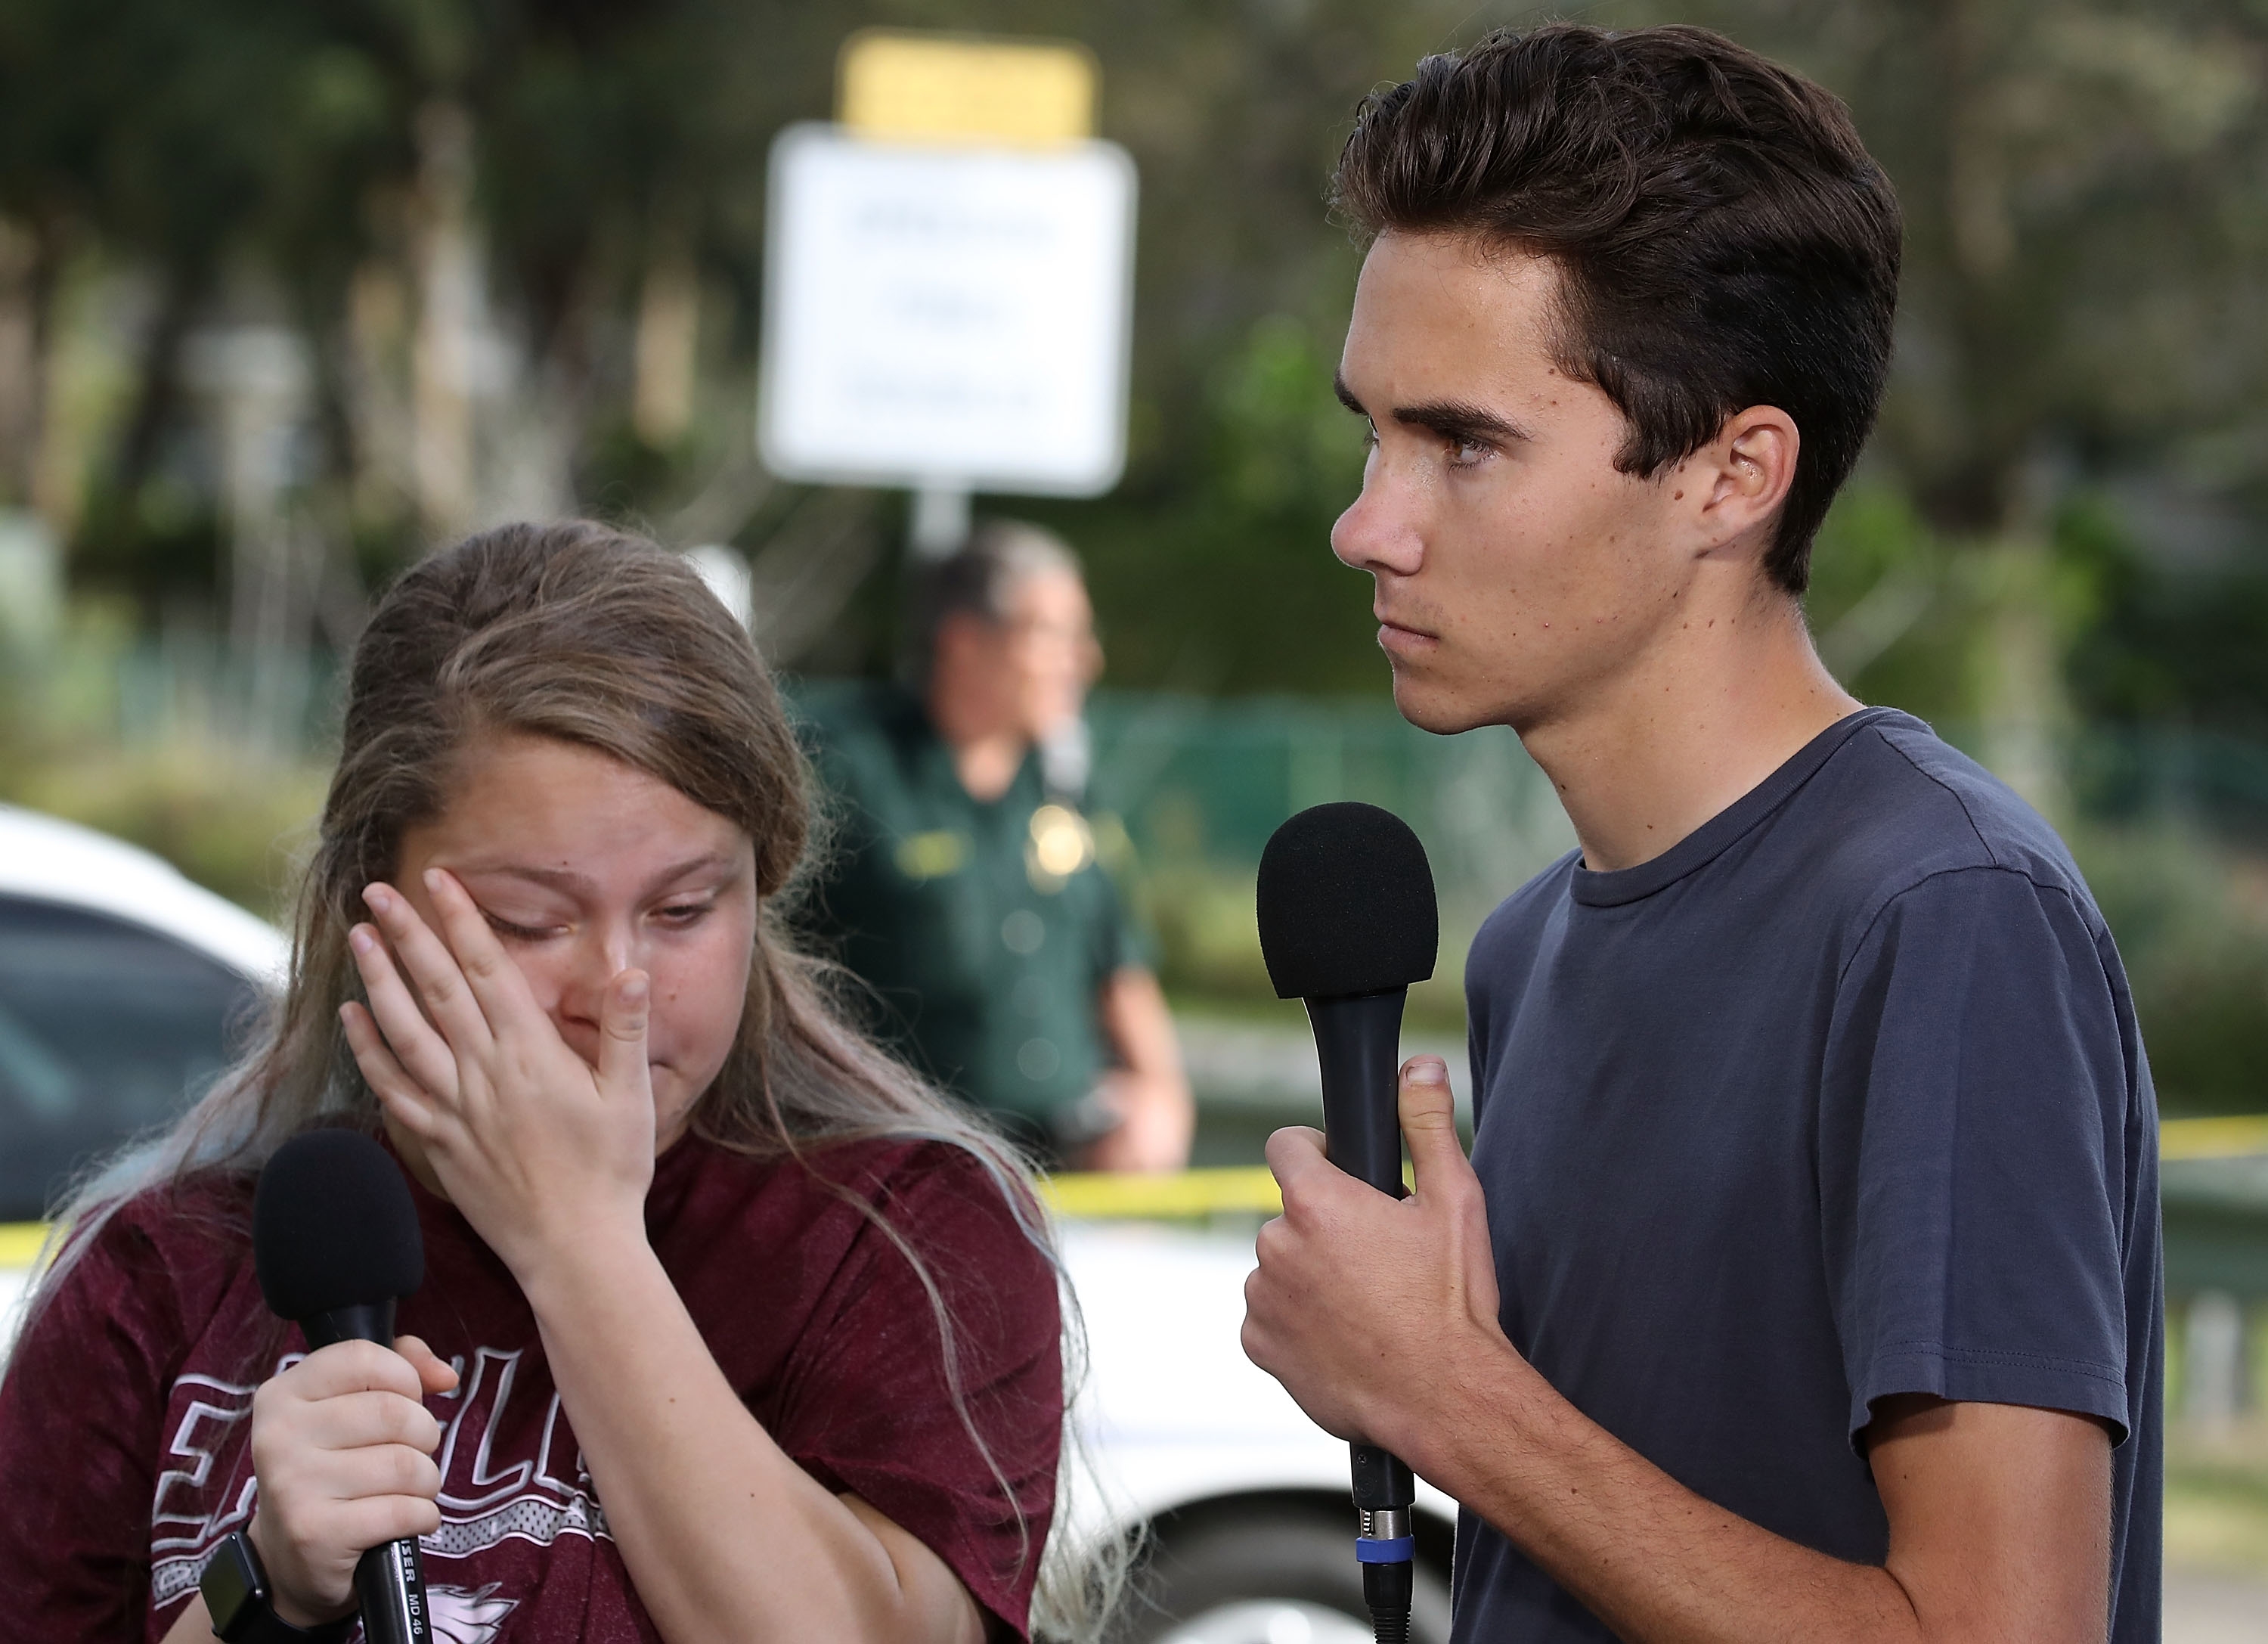 Fla. Shooting Survivor Rips Trump Jr. for 'Liking' Conspiracy Tweets